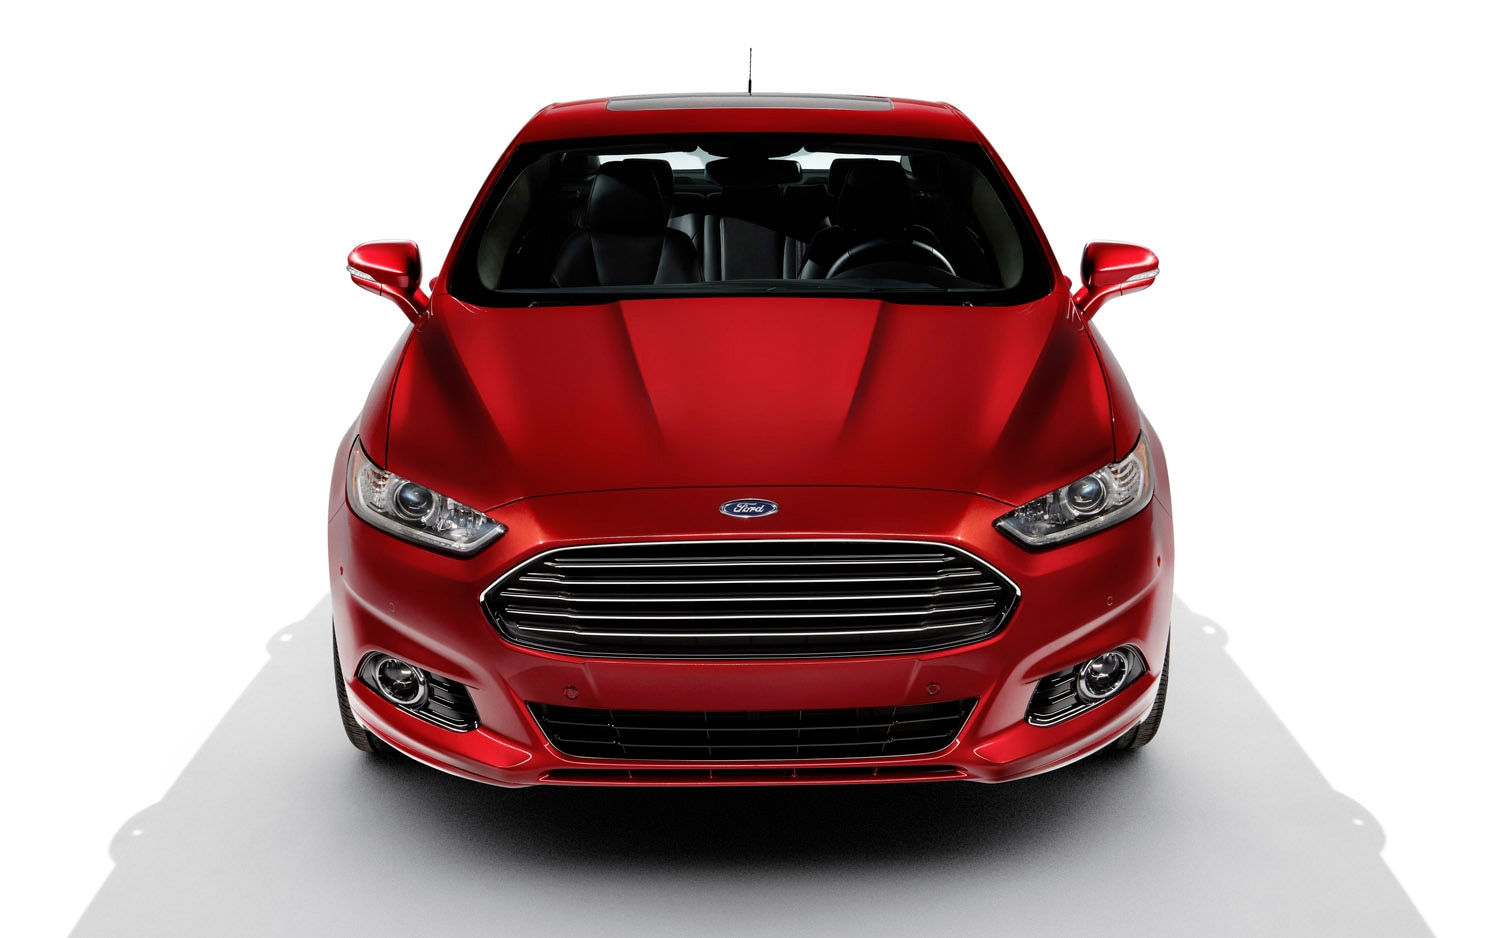 2013 Ford Fusion Front View1